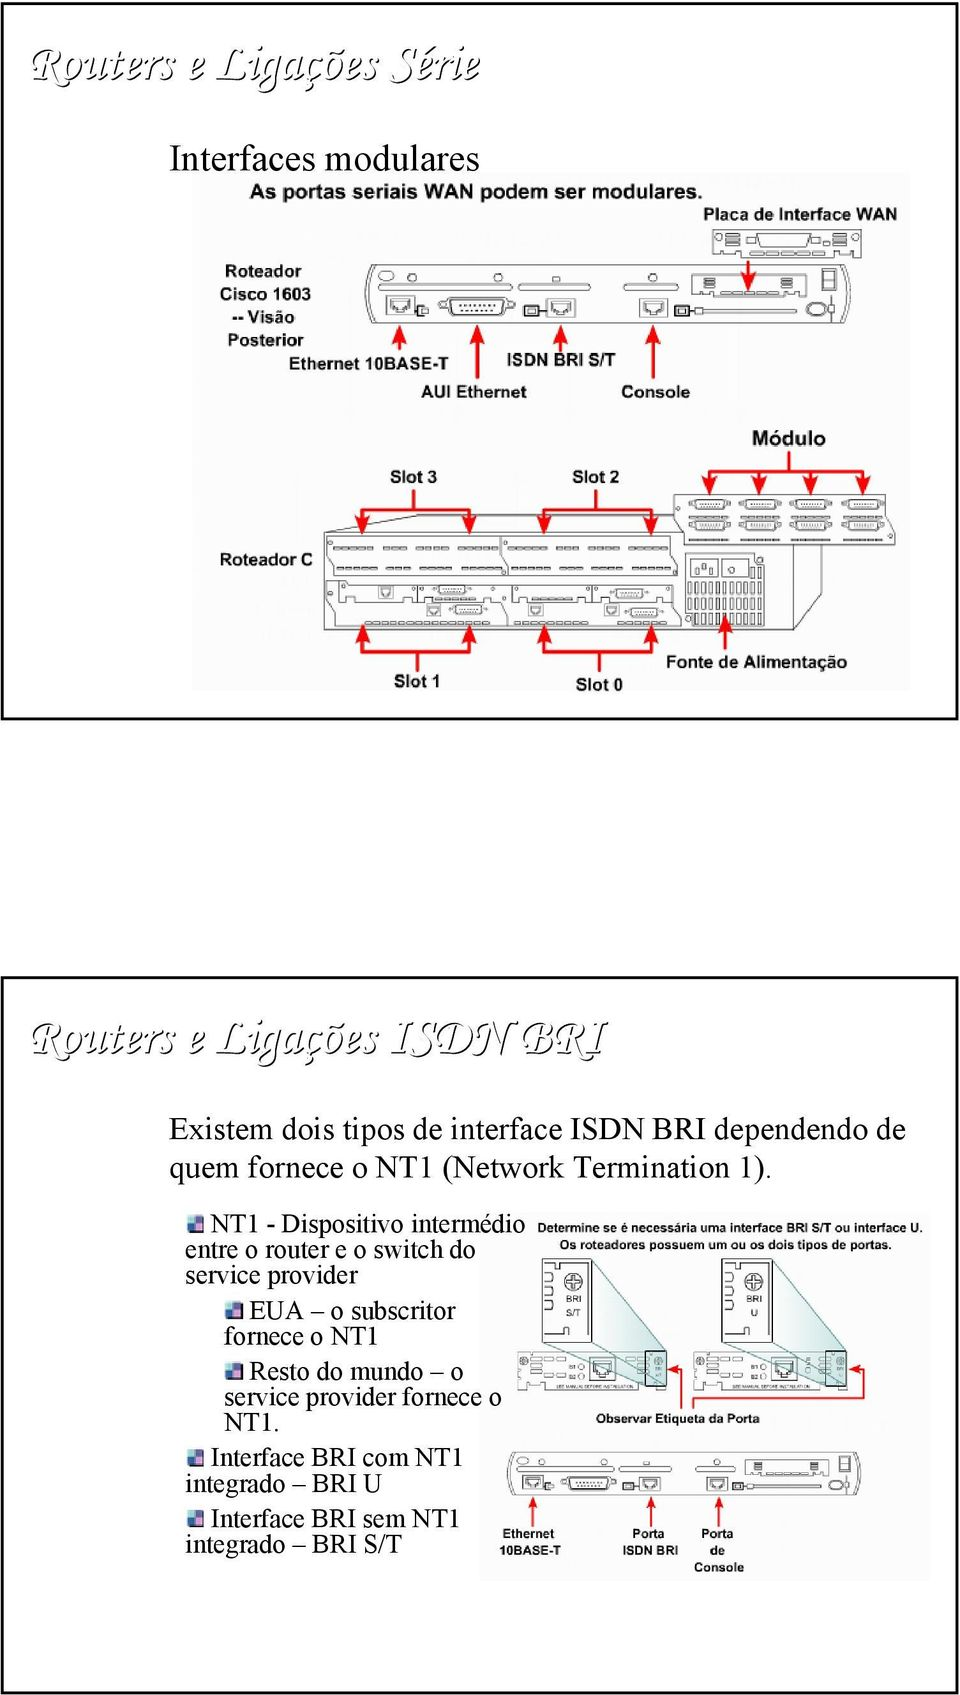 NT1 - Dispositivo intermédio entre o router e o switch do service provider EUA o subscritor fornece o